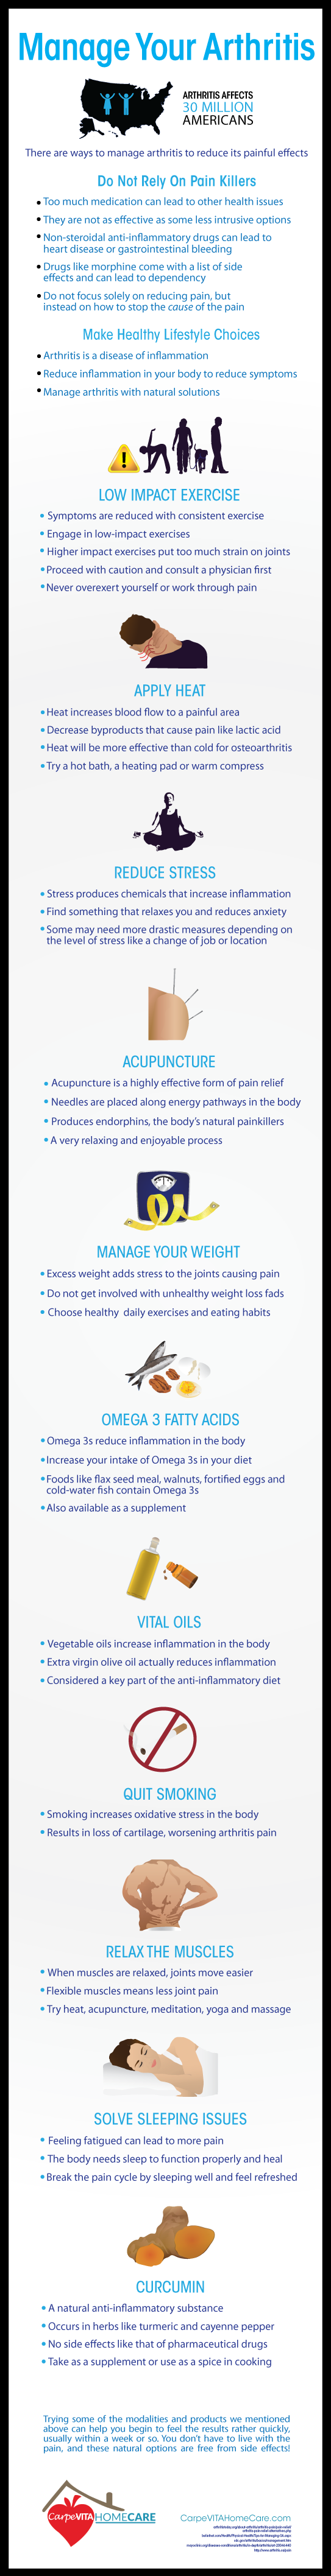 Infographic-How-To-Manage-Arthritis